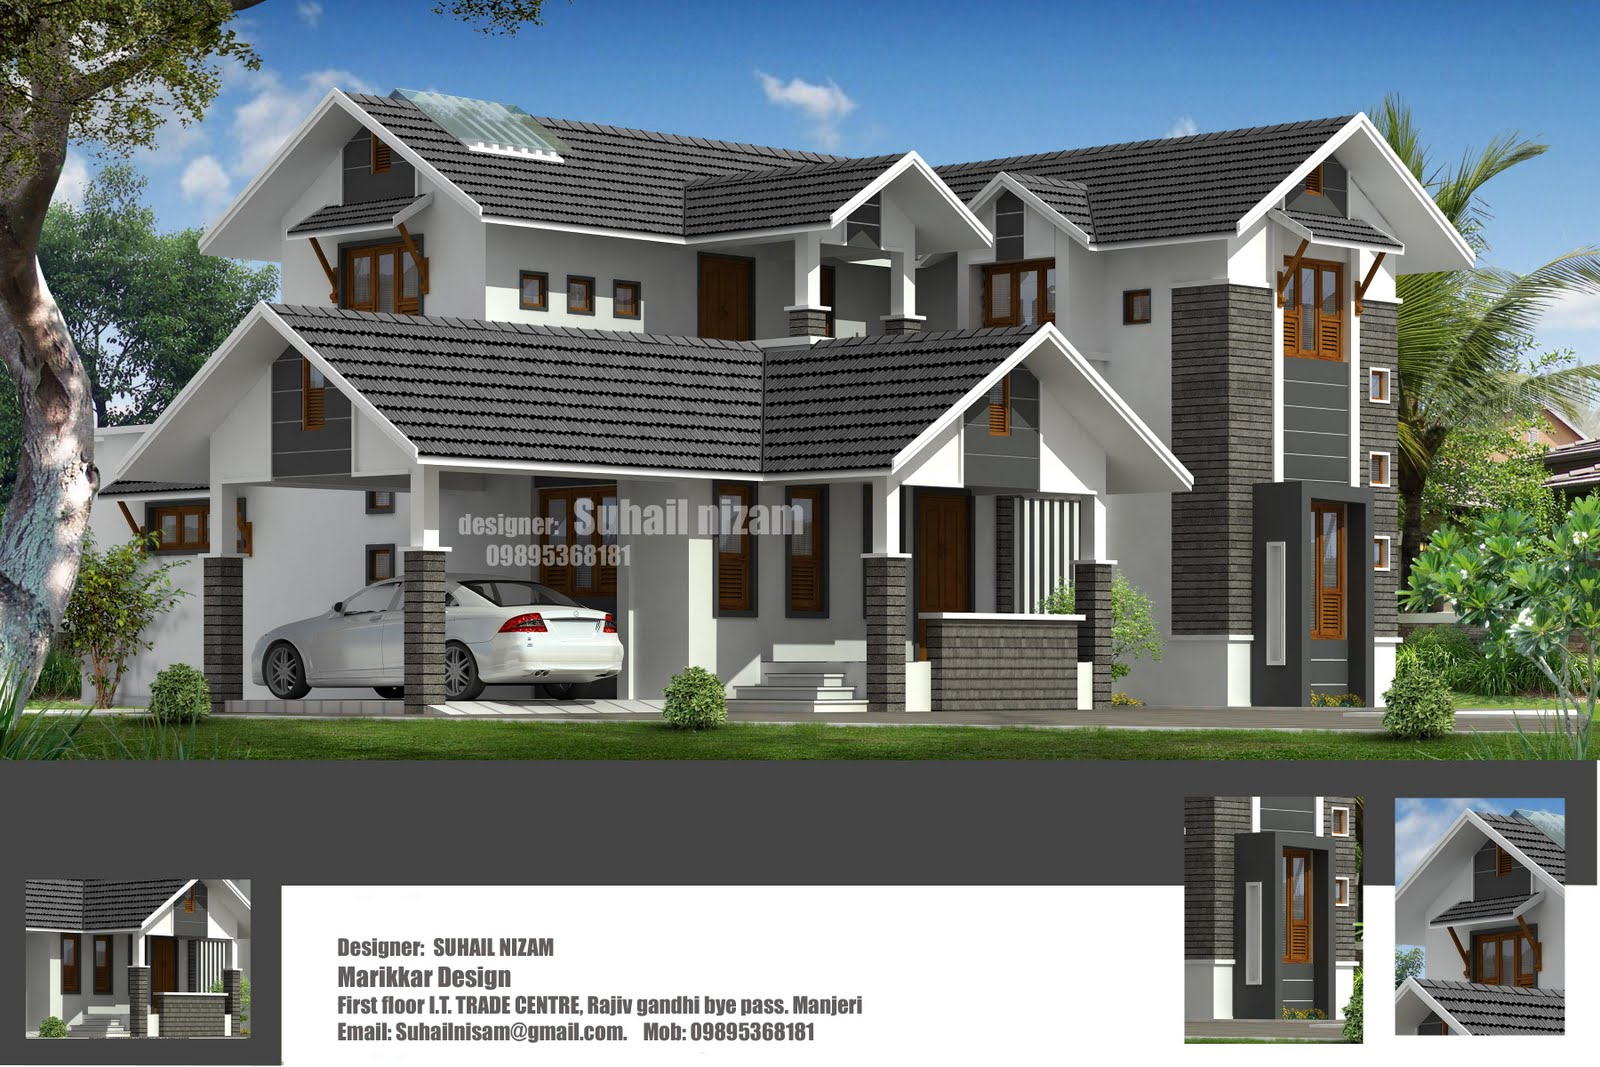 Plan+and+elevation+of+2678+sqft+Villa+residence+Designs+from+marikkar